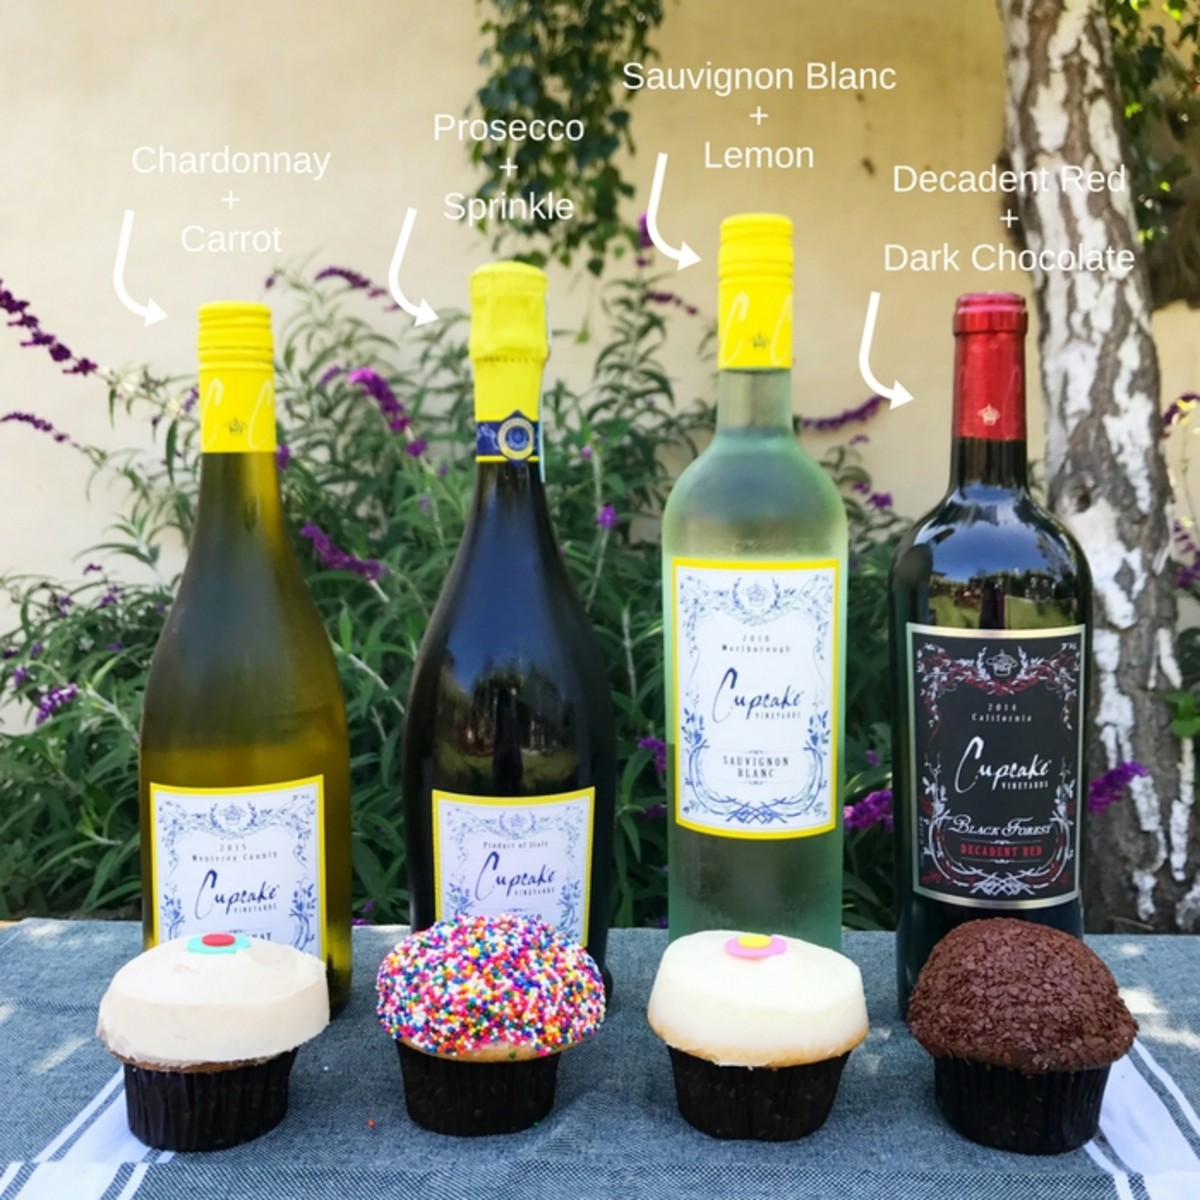 Cupcake Wines and Sprinkle Cupcakes